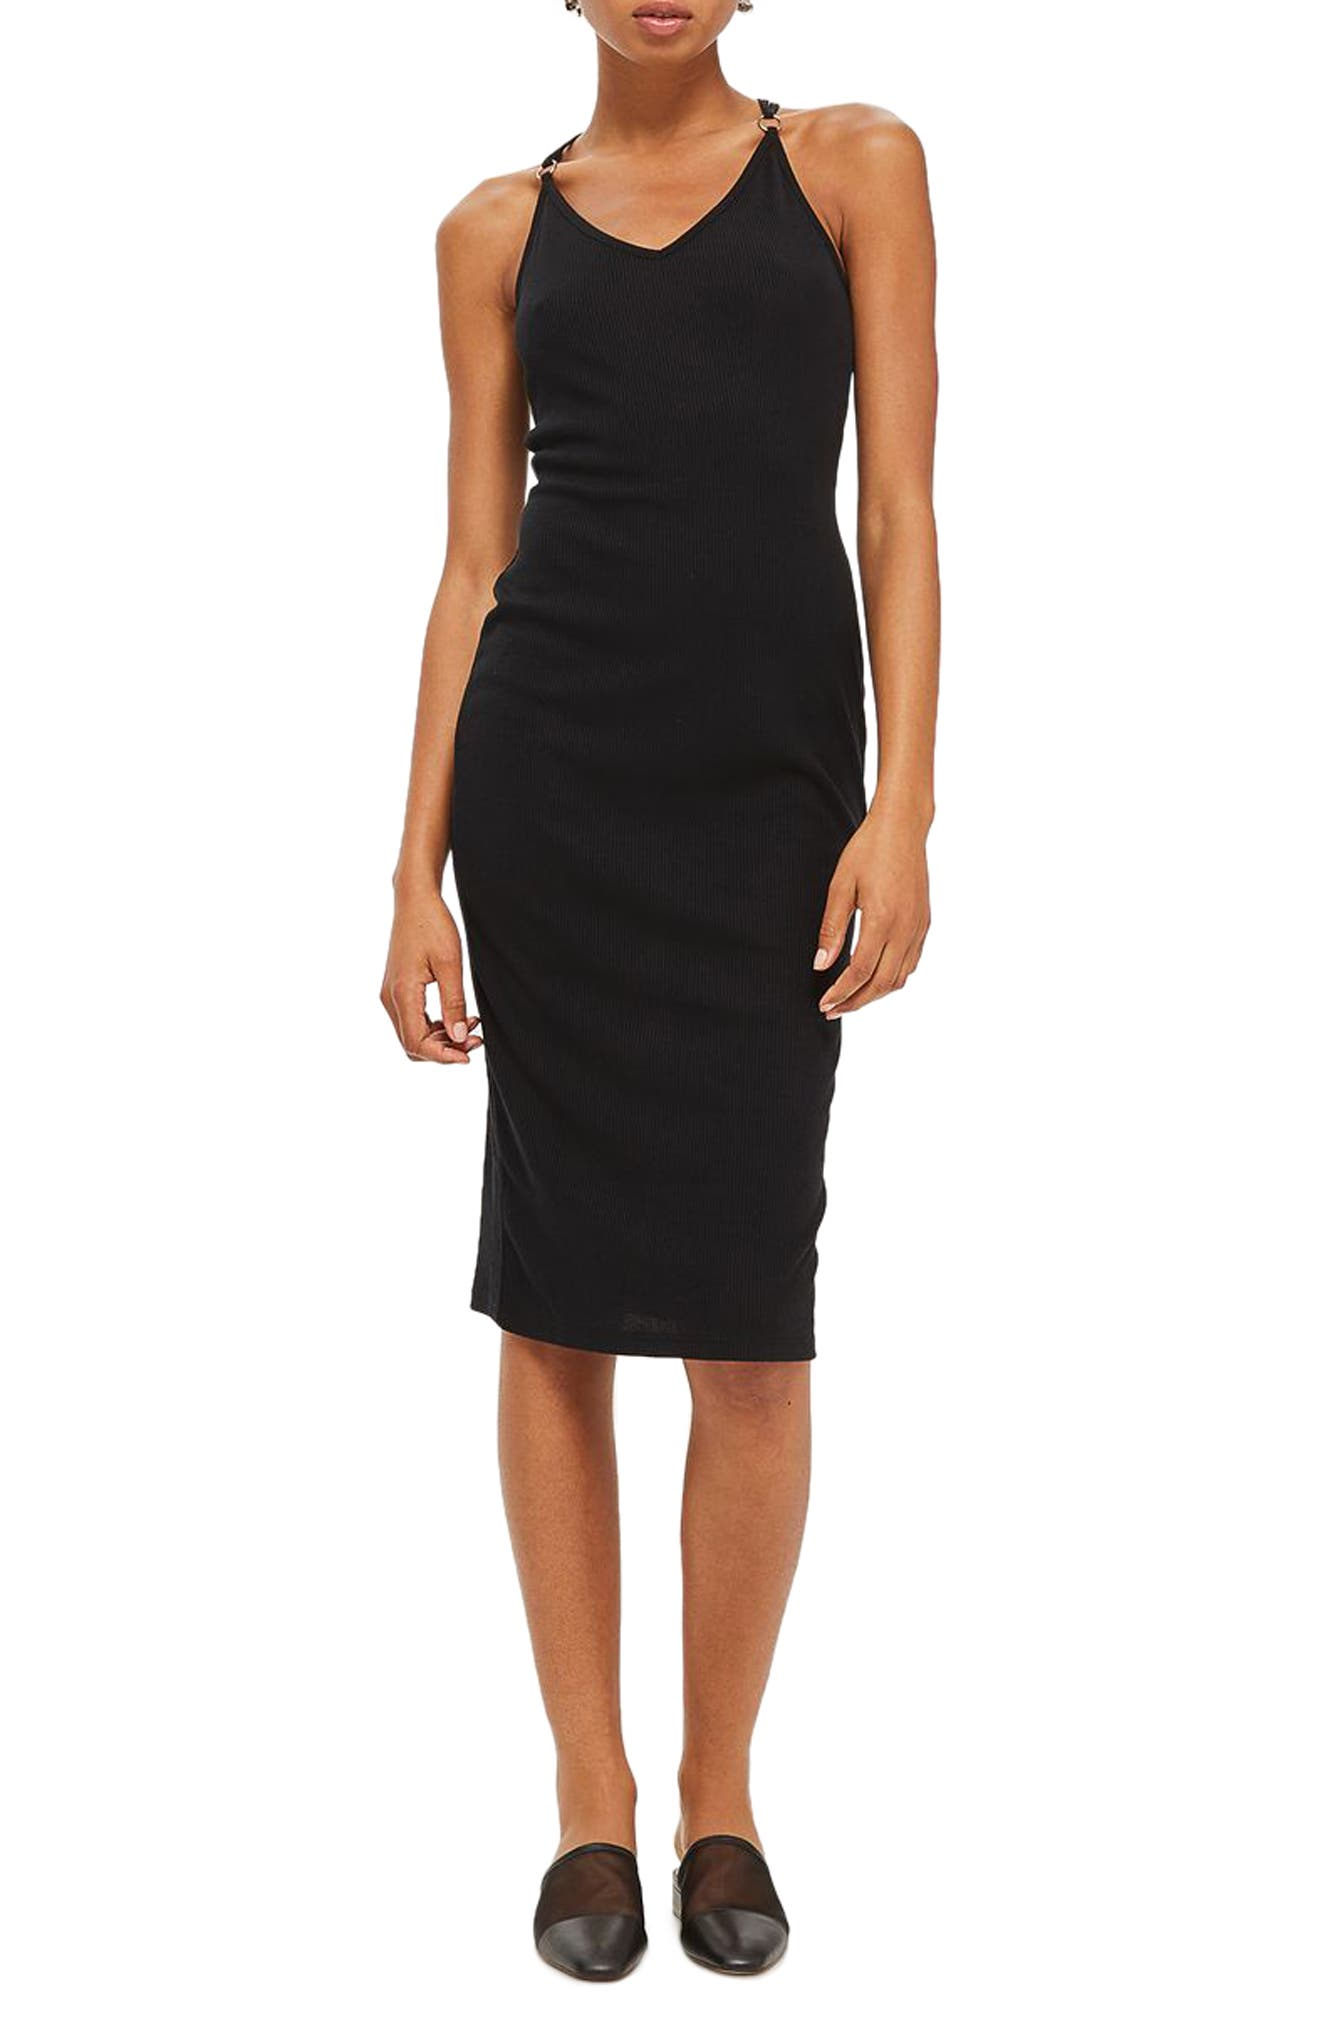 Topshop Lace-Up Back Body-Con Dress